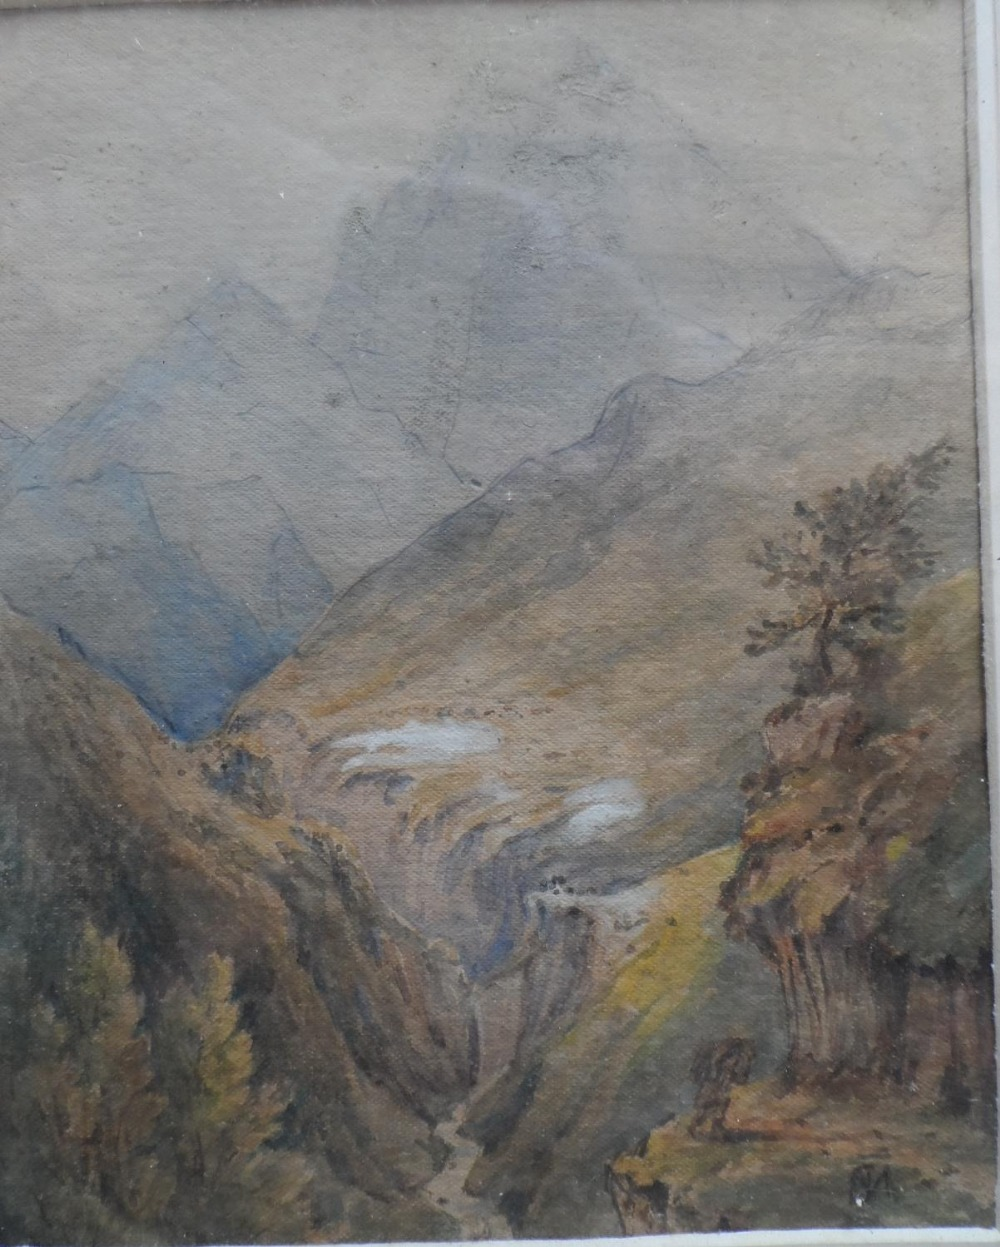 Six Alpine scene watercolours and drawing, all by differing artists, all framed (6) - Image 3 of 6